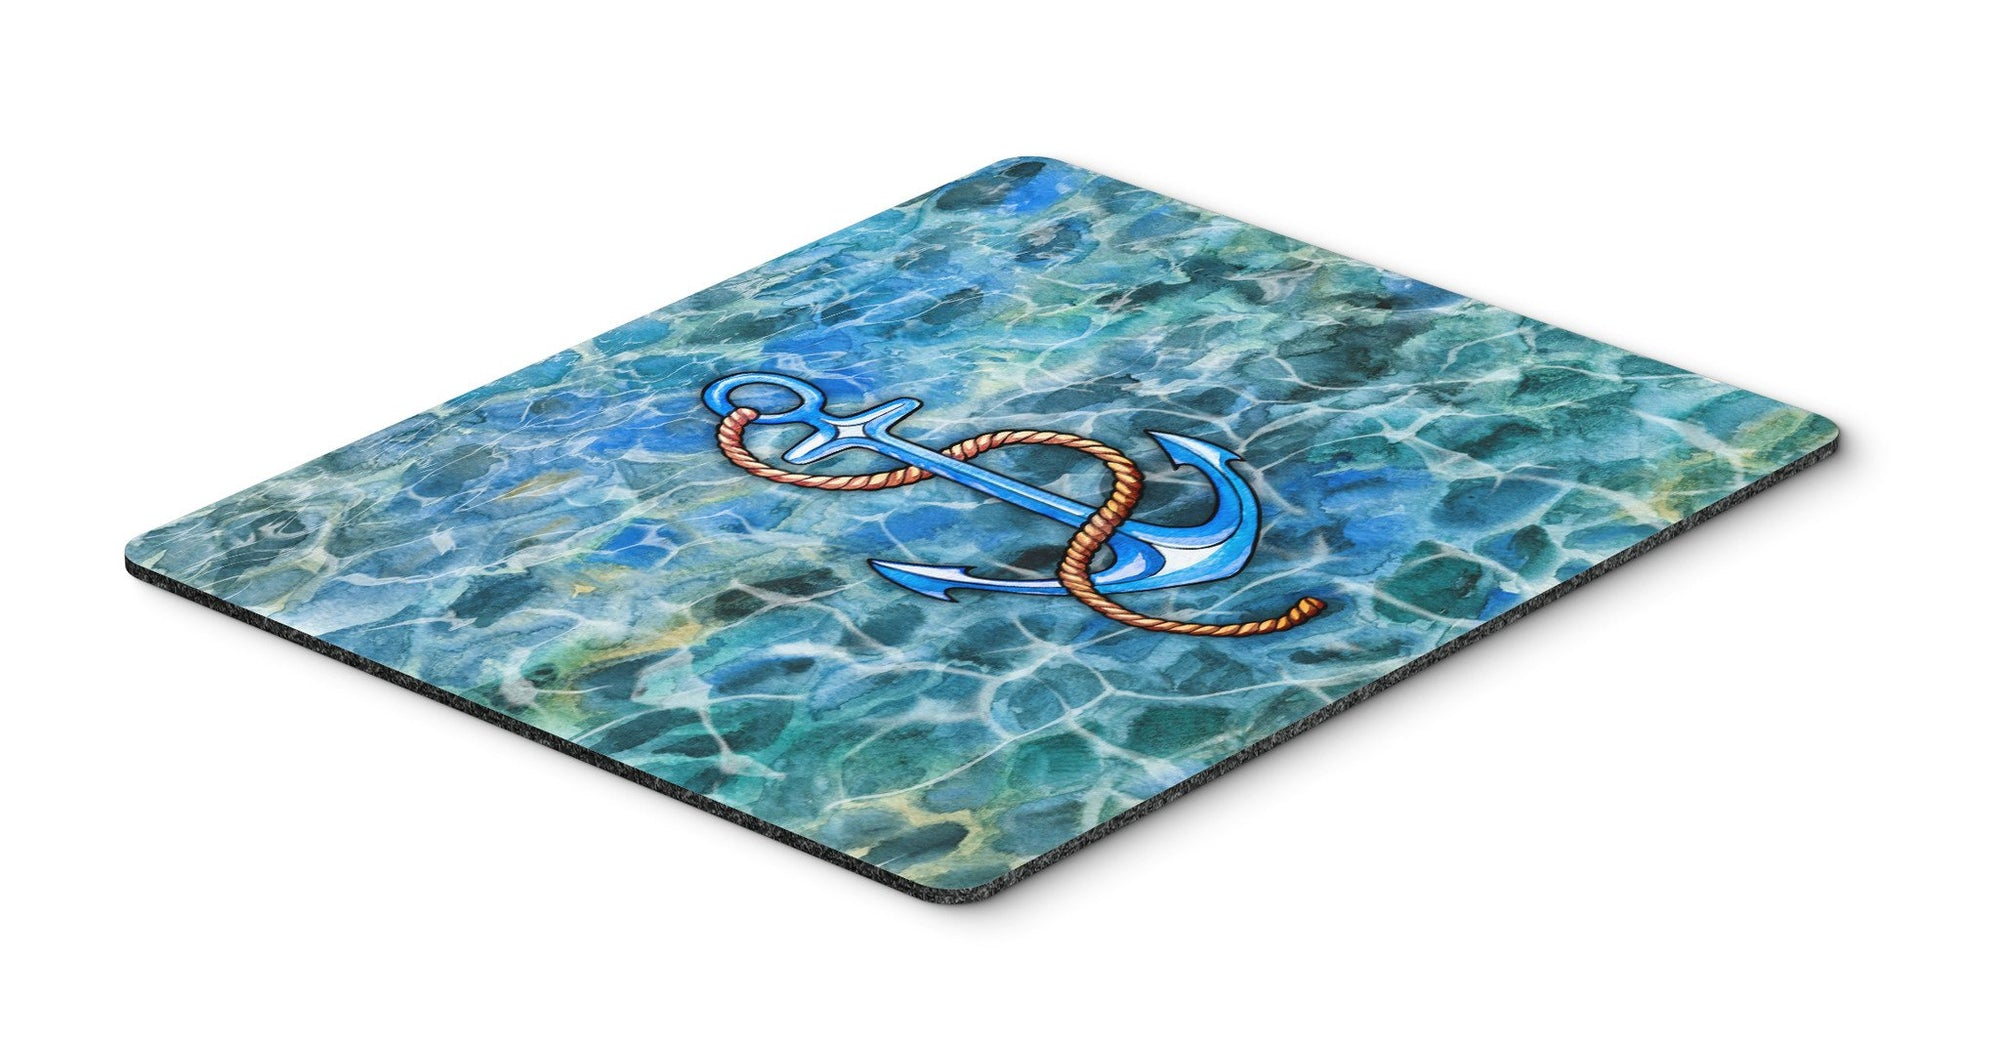 Anchor Mouse Pad, Hot Pad or Trivet BB5350MP by Caroline's Treasures